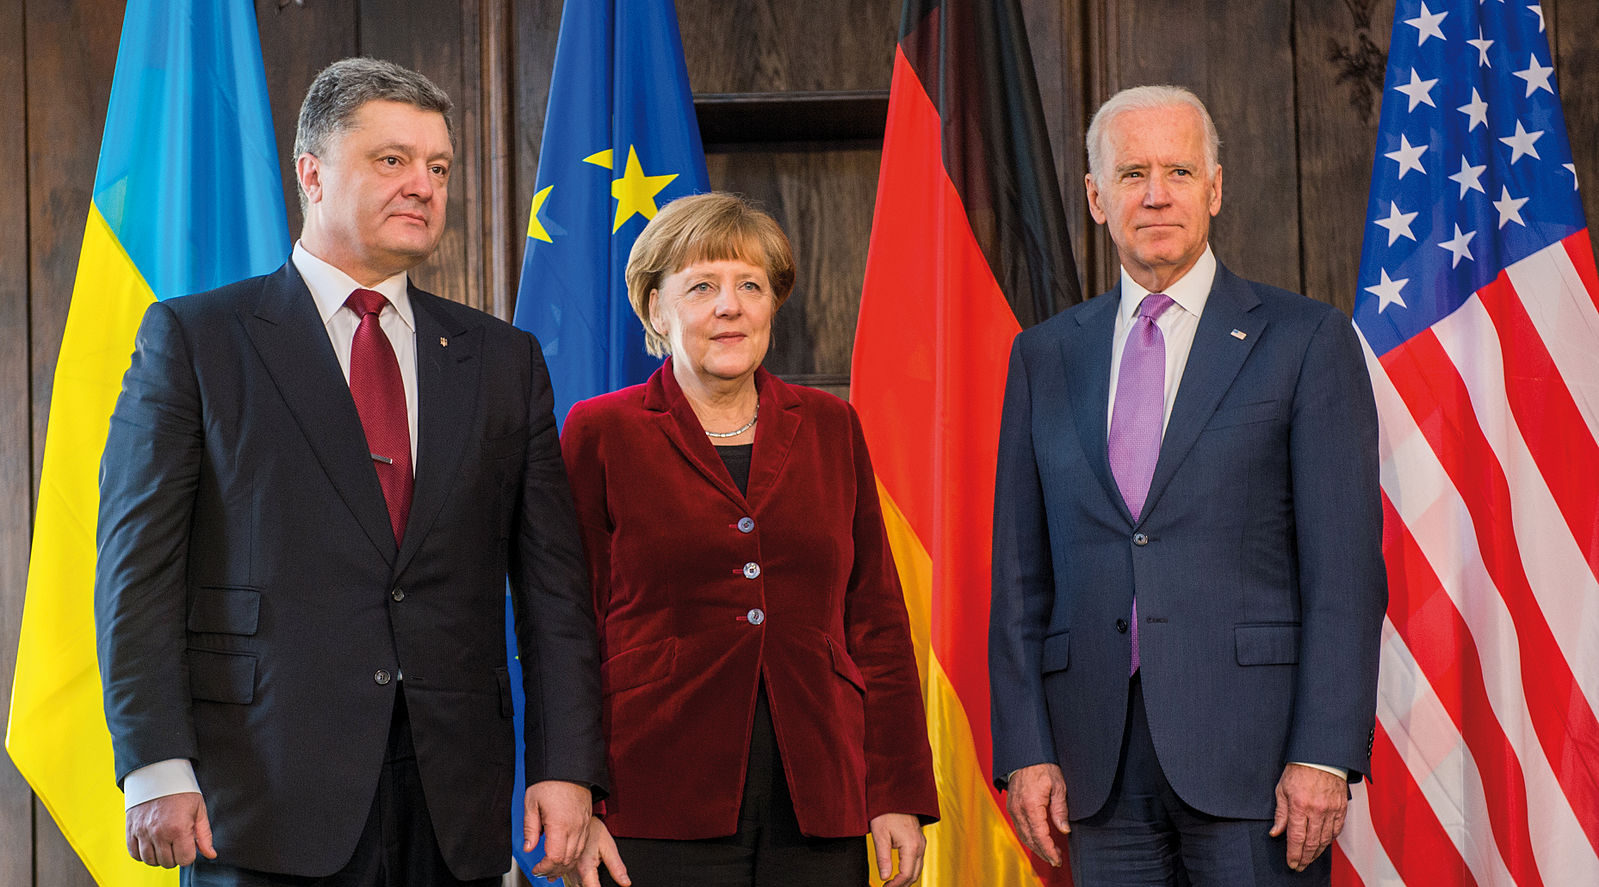 Photo: 51st Munich Security Conference 2015: Petro Poroshenko (Left to right: Former President, Ukraine), Dr. Angela Merkel (Federal Chancellor, Federal Republic of Germany), Joseph R. Biden Jr. (Former Vice President, United States of America) Credit: Munich Security Conference.